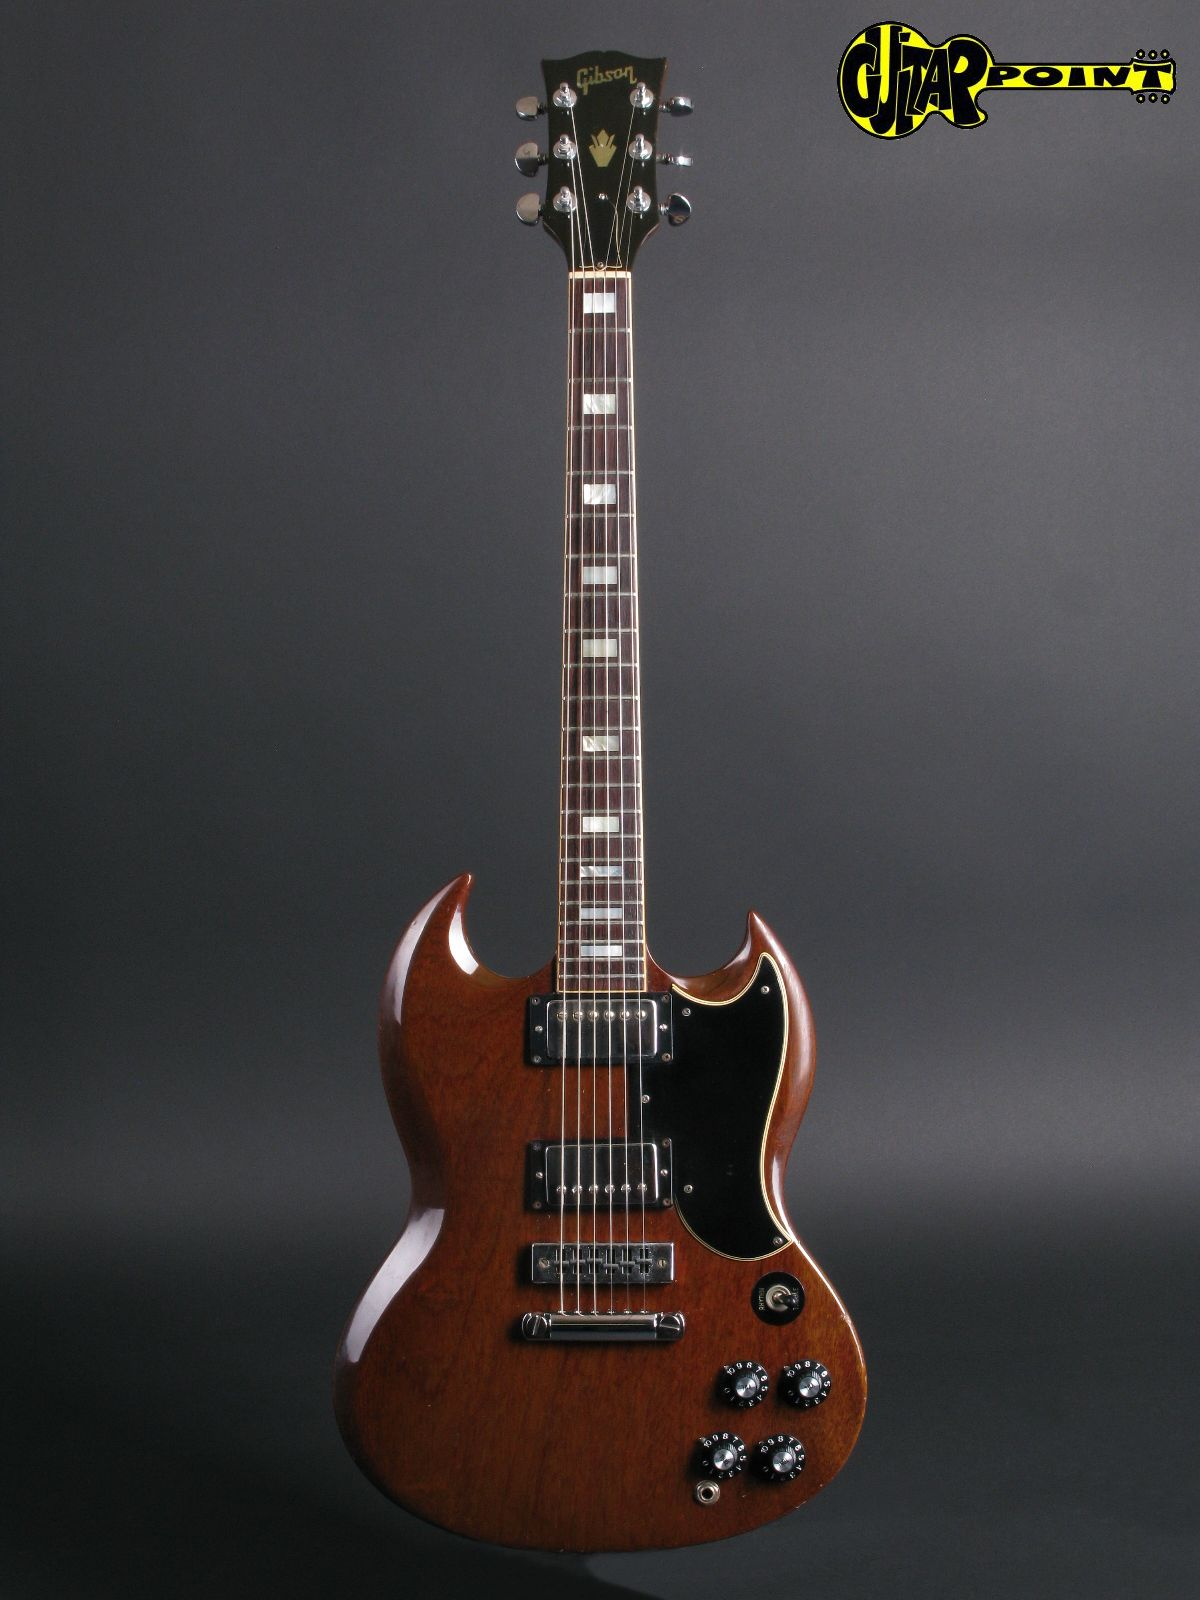 Gibson Guitars For Sale >> Gibson SG Standard 1972 Cherry Guitar For Sale GuitarPoint